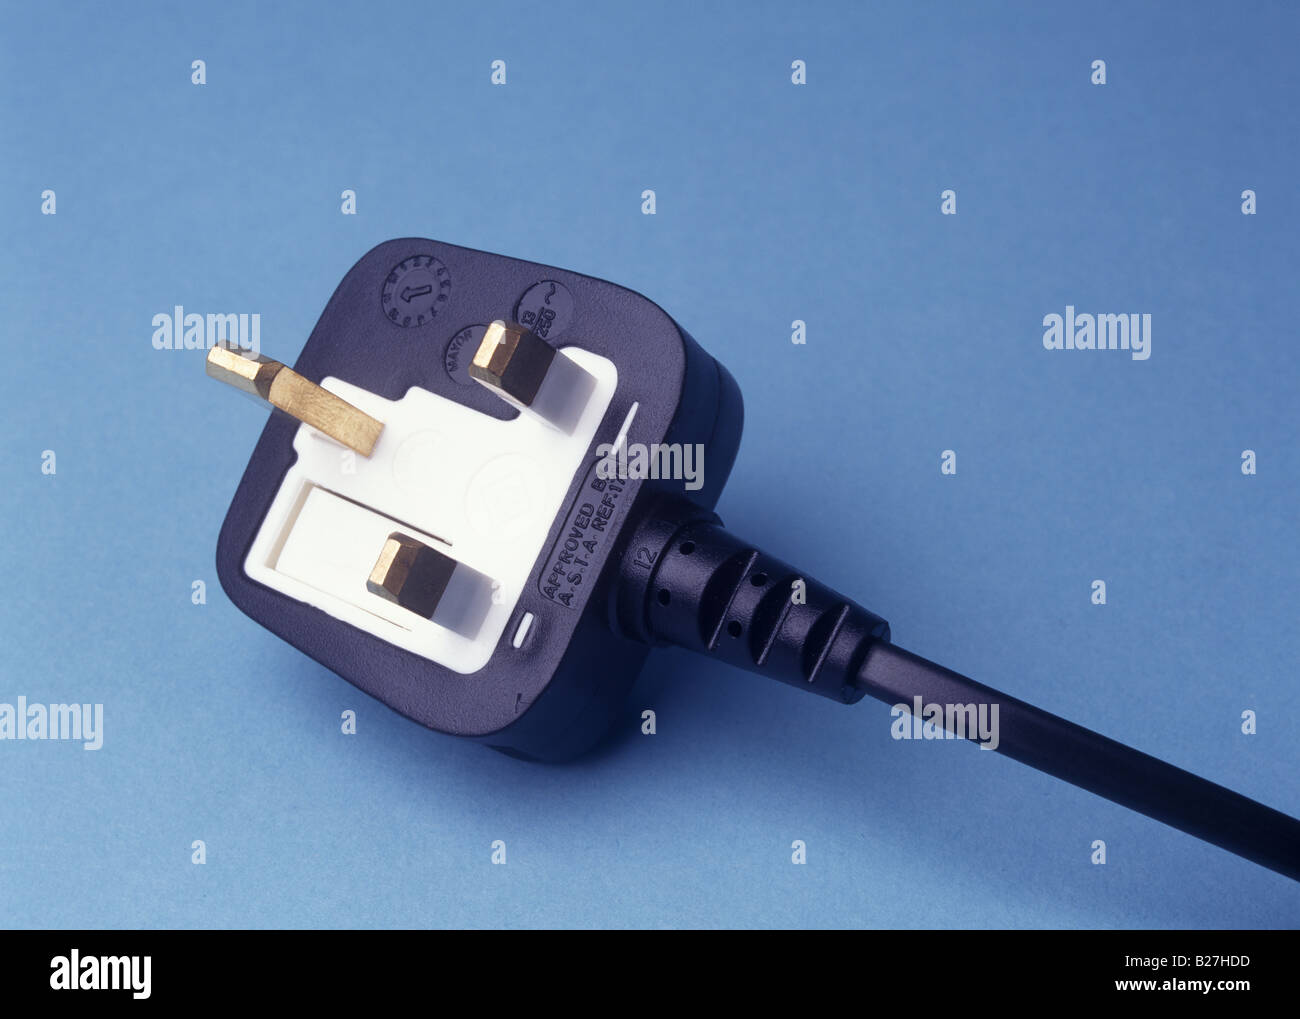 a 3 pin plug UK type Stock Photo: 18607049 - Alamy